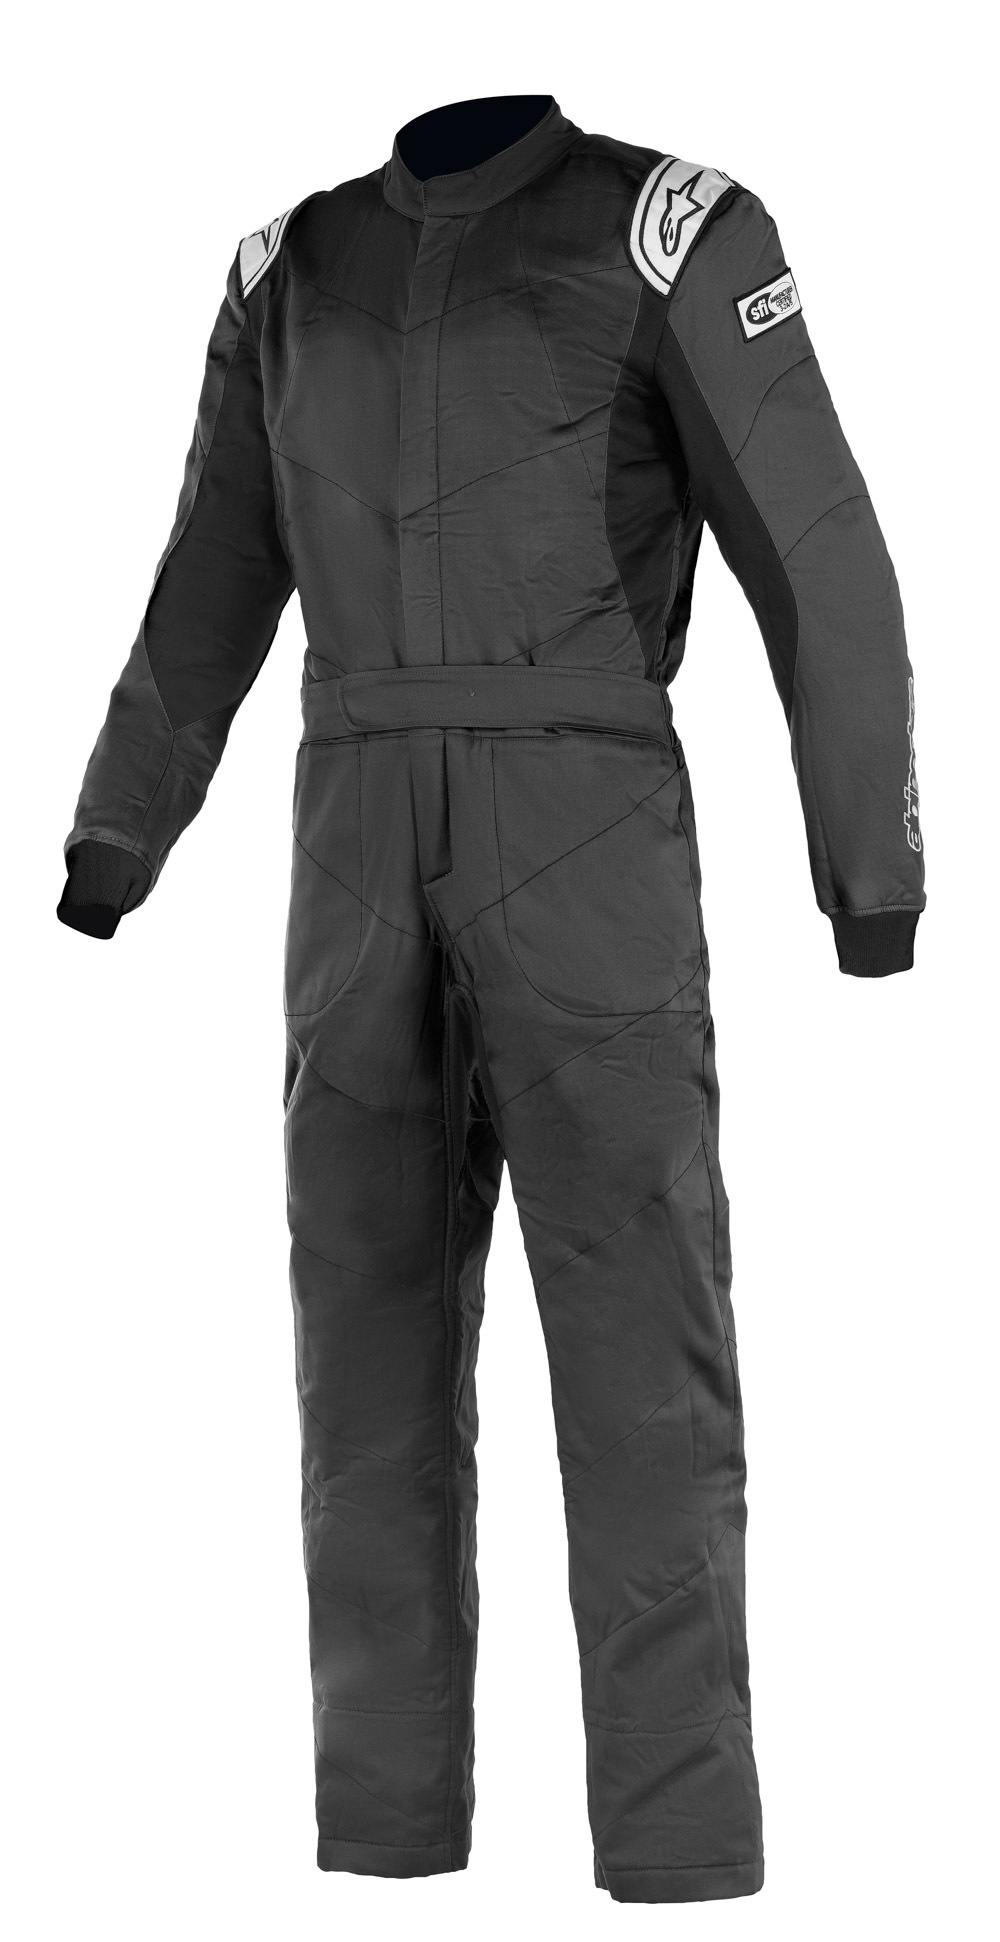 Alpinestars USA 3355921-12-62 Suit, Knoxville V2, Driving, 1 Piece, SFI 3.2A/5, Boot-Cut, Triple Layer, Fire Retardant Fabric, Black, Size 62, X-Large / 2X-Large, Each